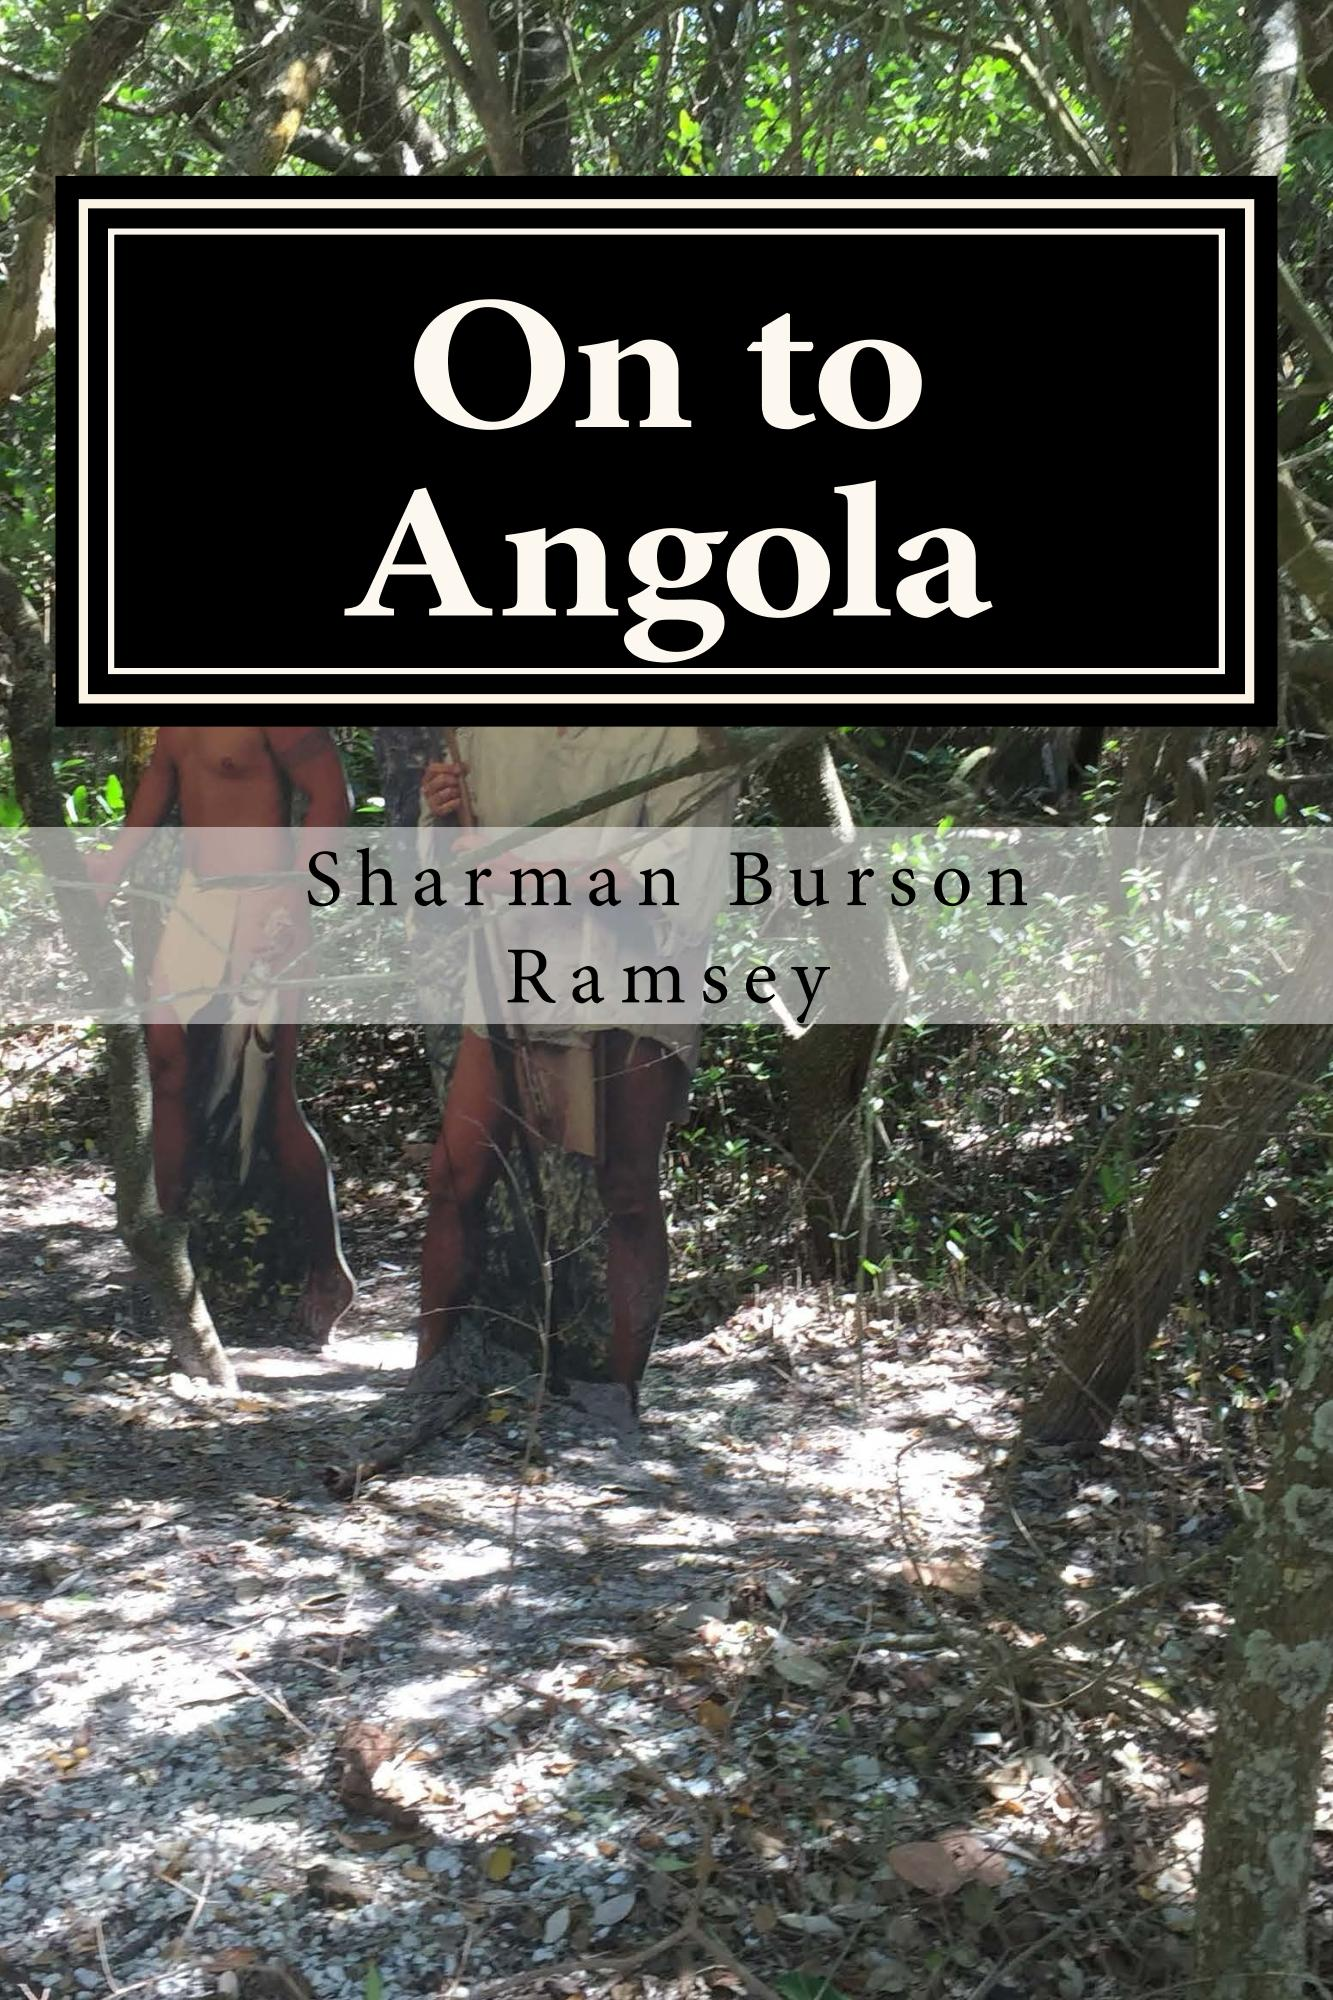 On to Angola Cover